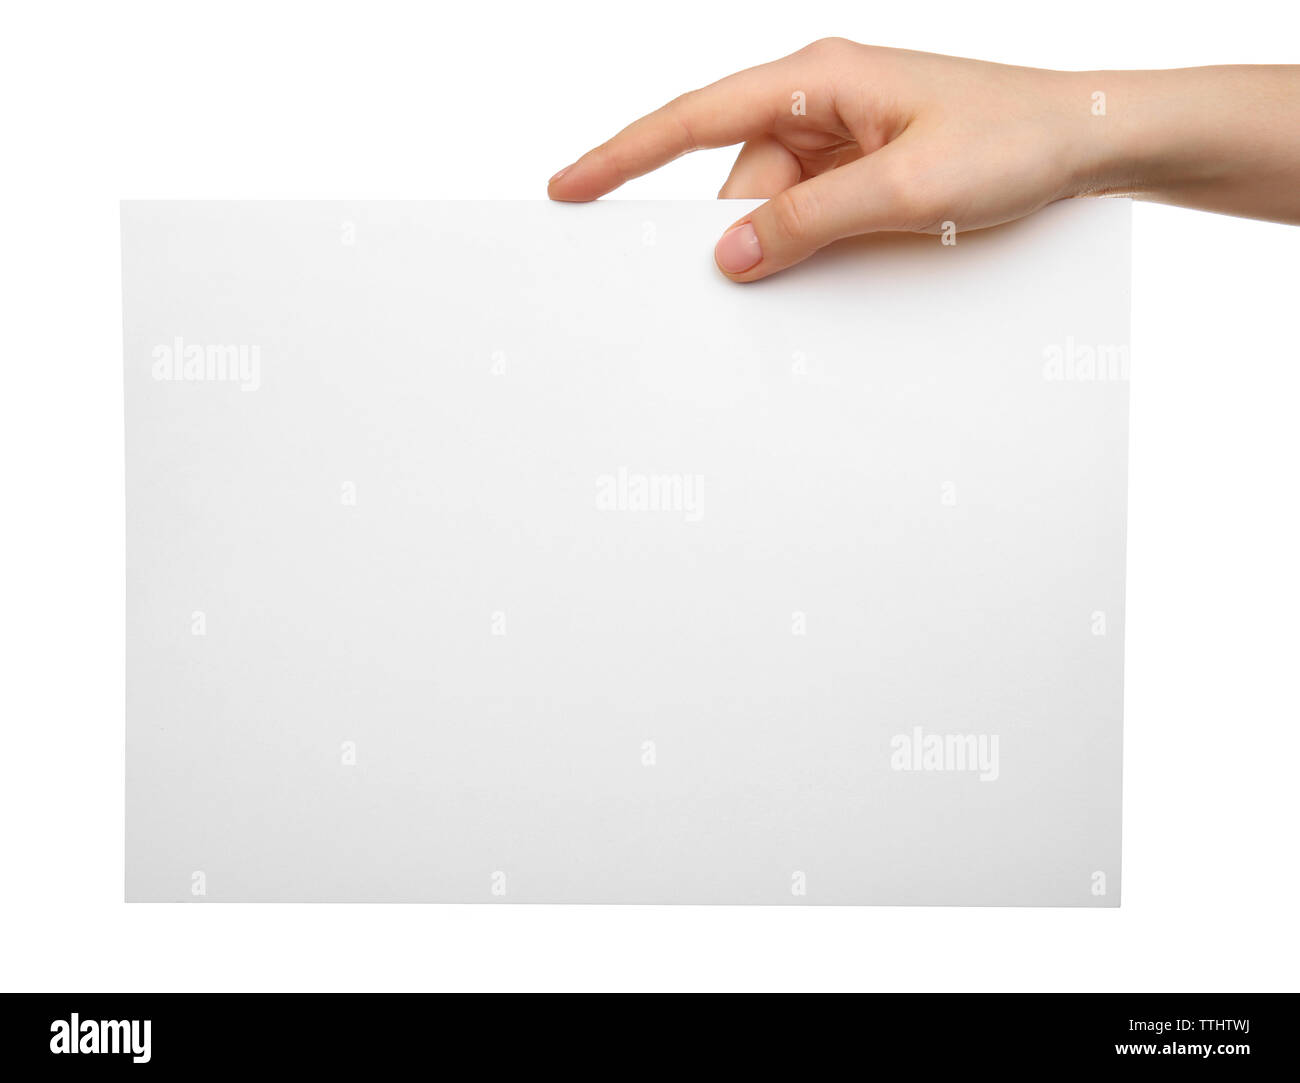 Female hand holding blank sheet of paper isolated on white - Stock Image